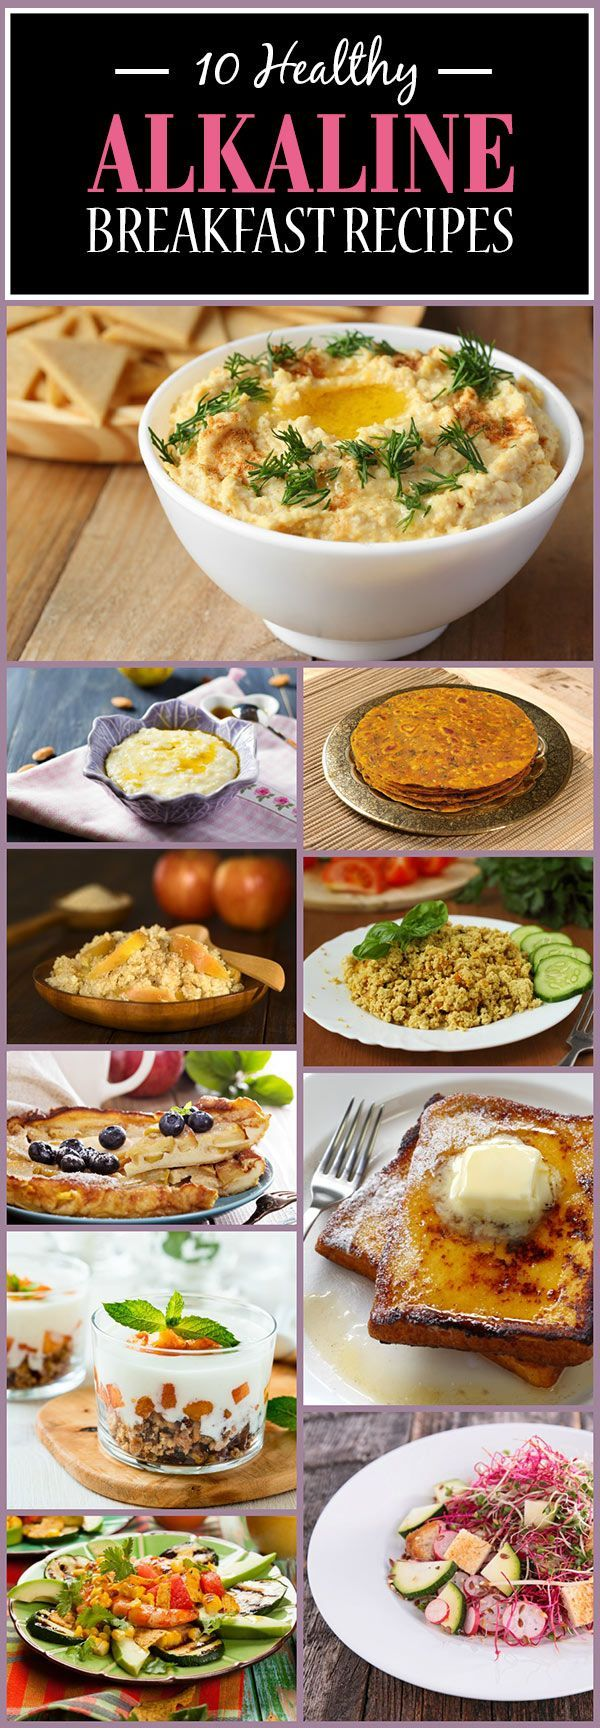 Looking for some delicious alkaline breakfast recipes? We have some of the best ...